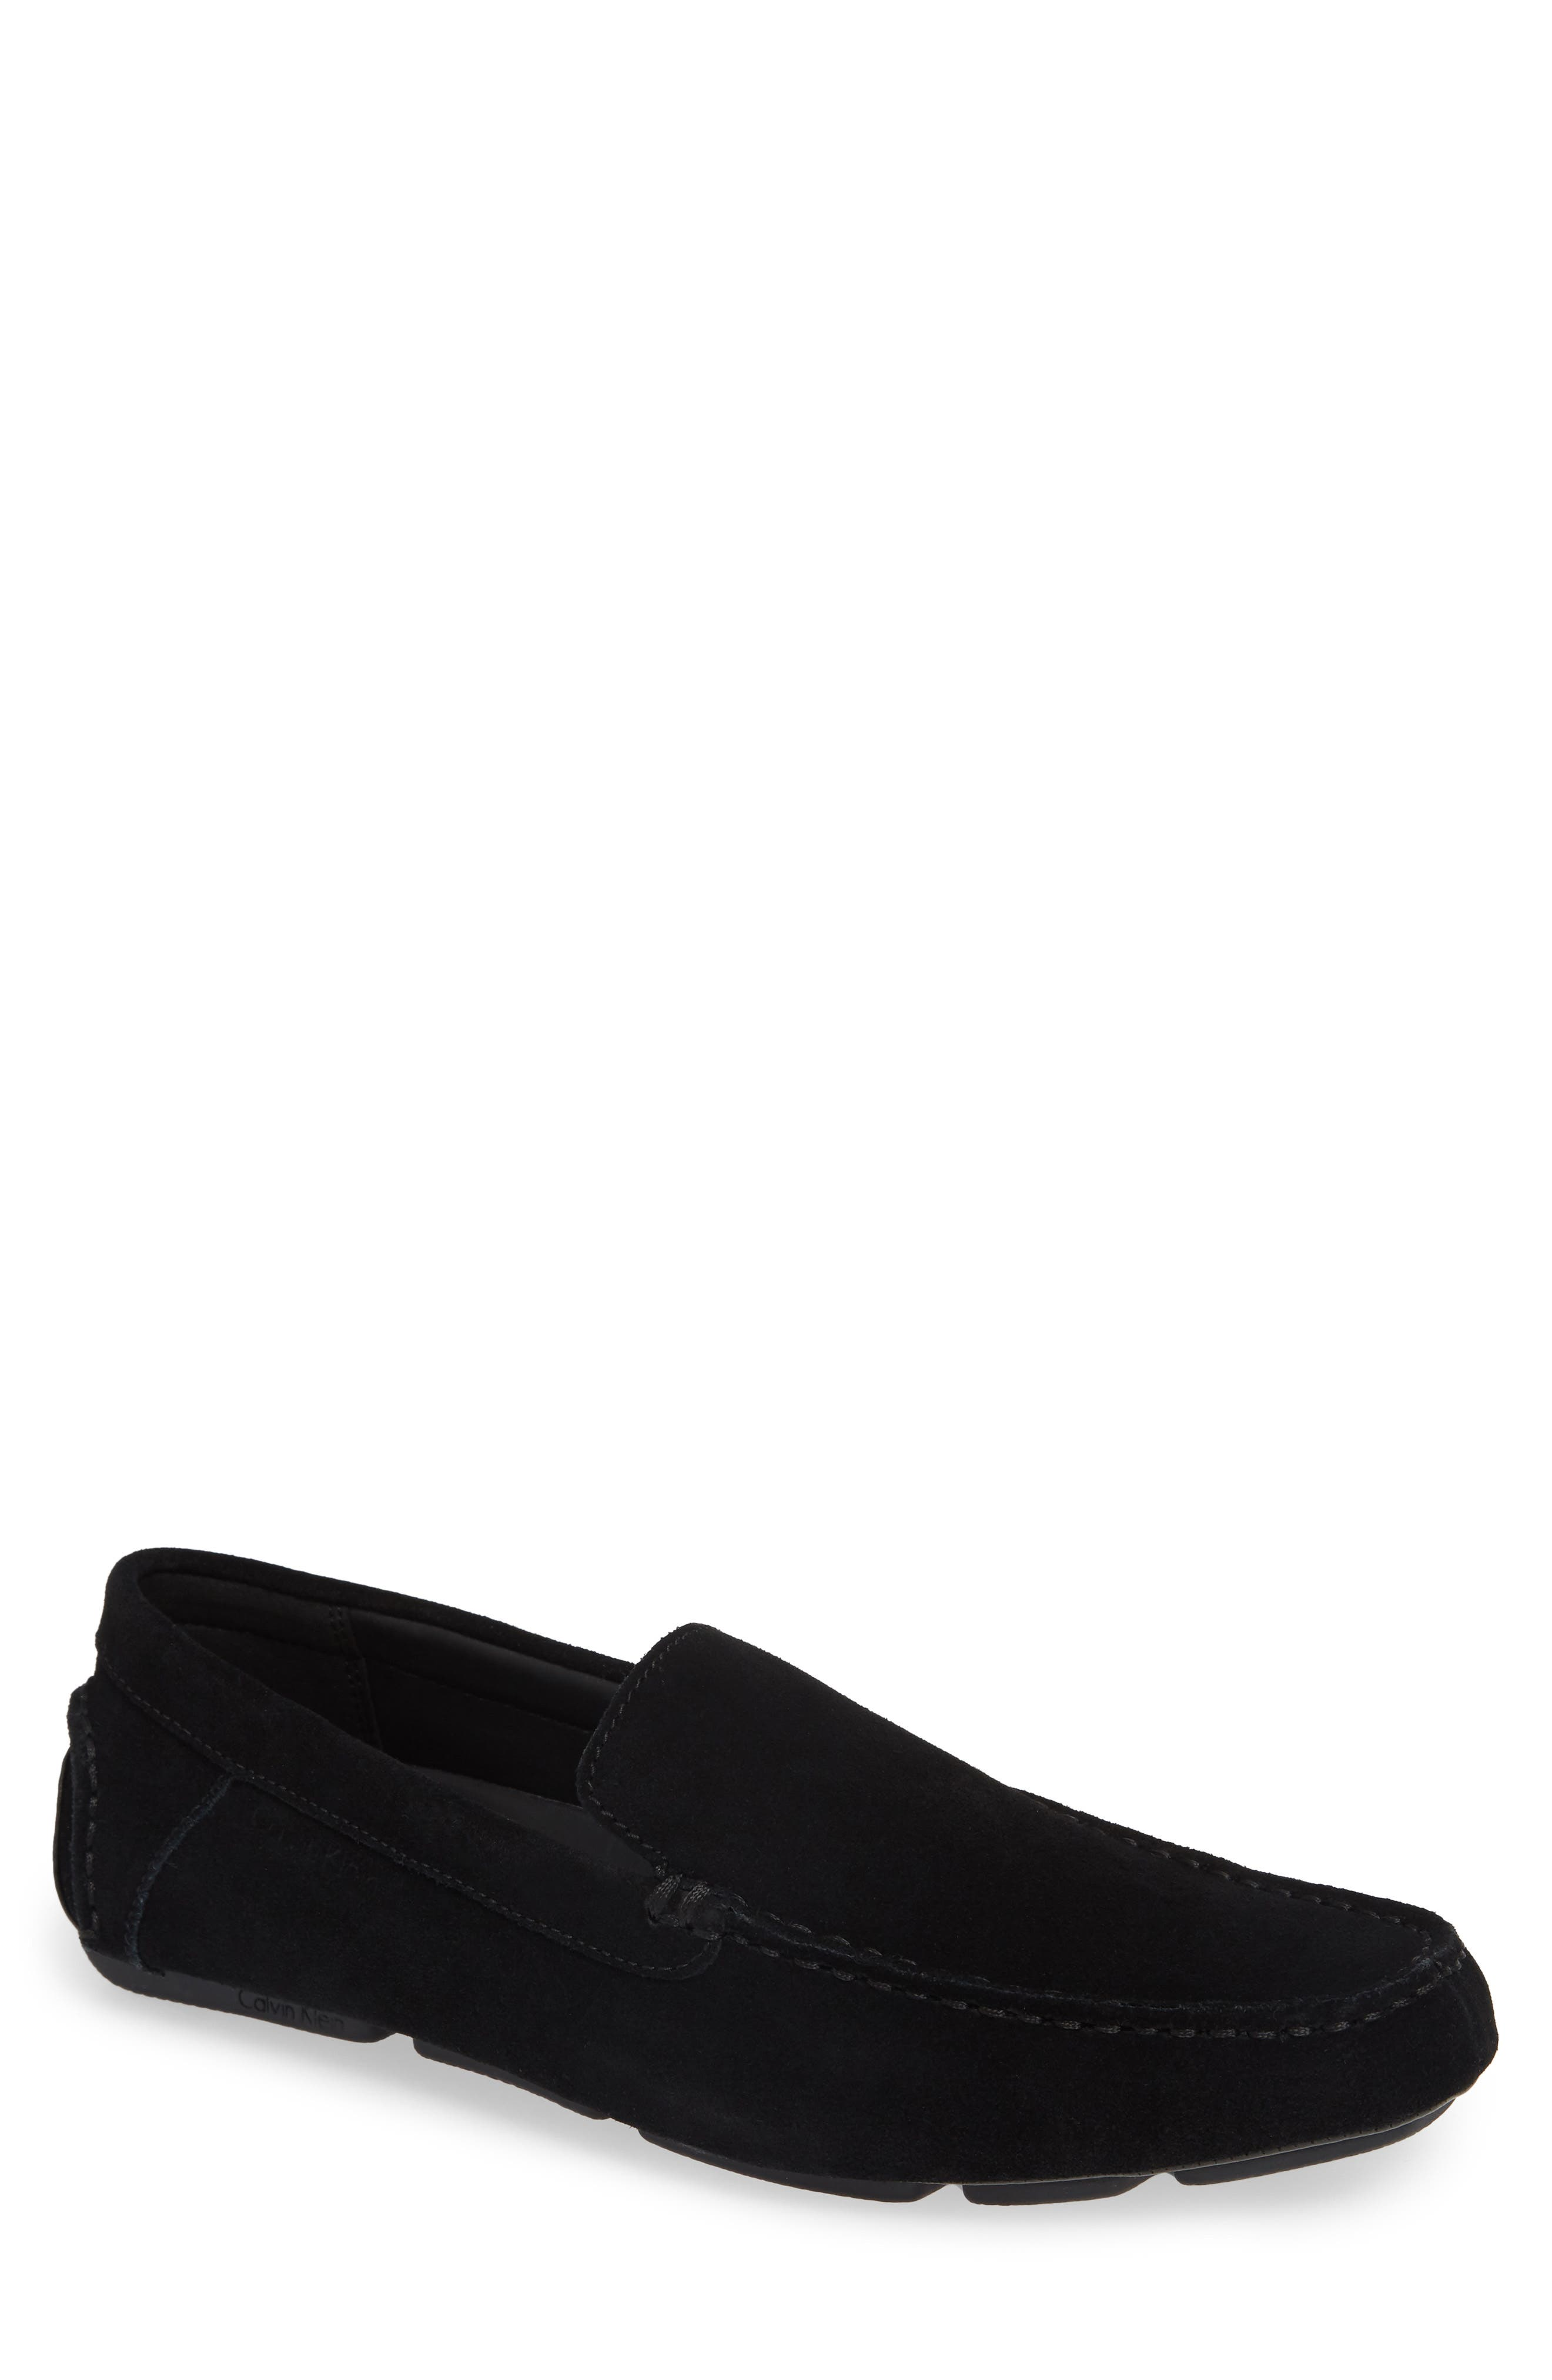 Miguel Textured Driving Loafer,                             Main thumbnail 1, color,                             BLACK CALF SUEDE